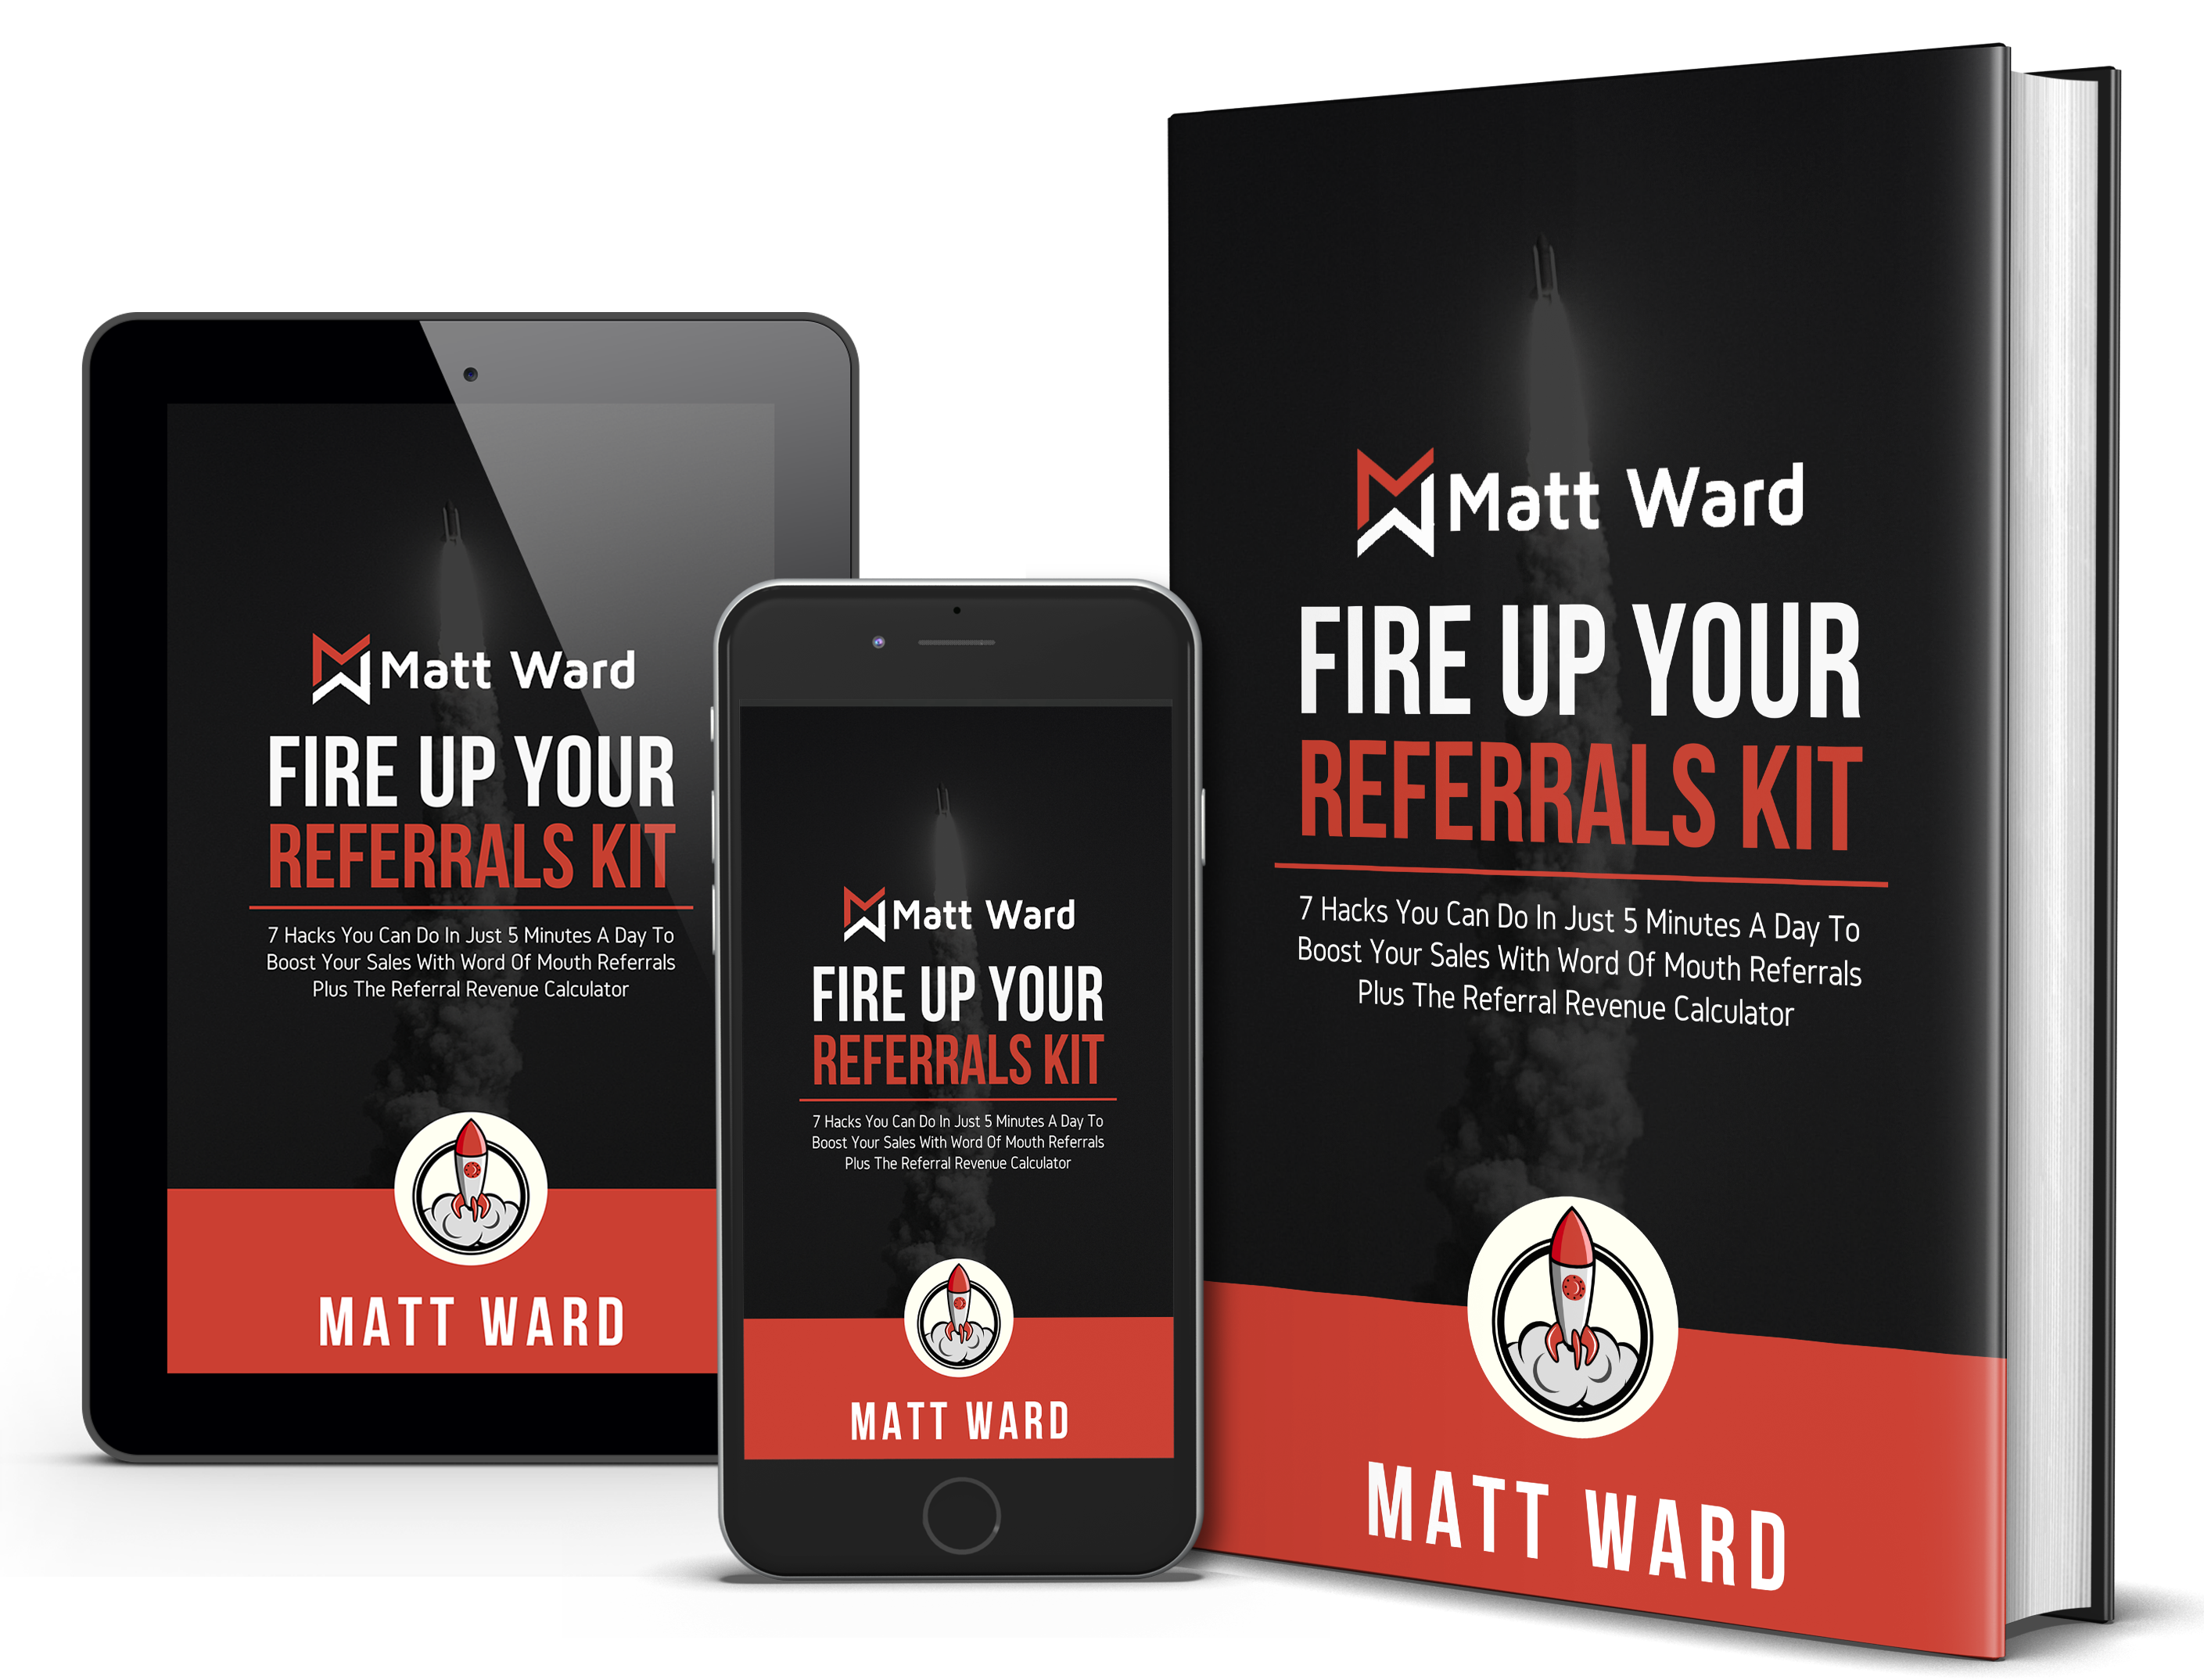 Fire Up Referrals Kit